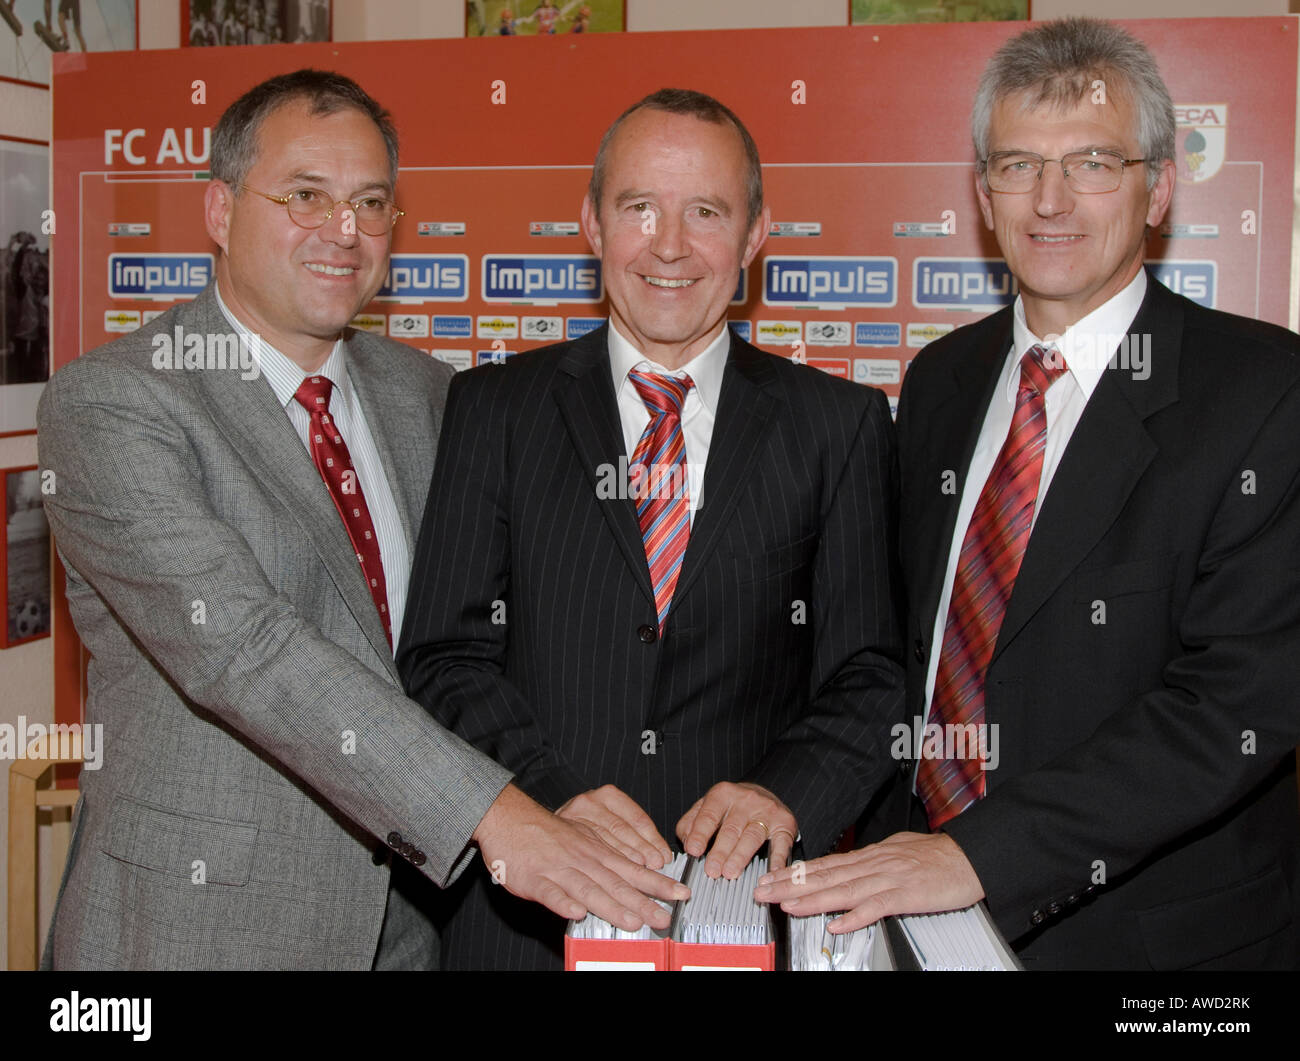 FC Augsburg, German soccer club and the HBM Stadien- und Sportstaettenbau GmbH signed a contract for the new 'impuls - Stock Image